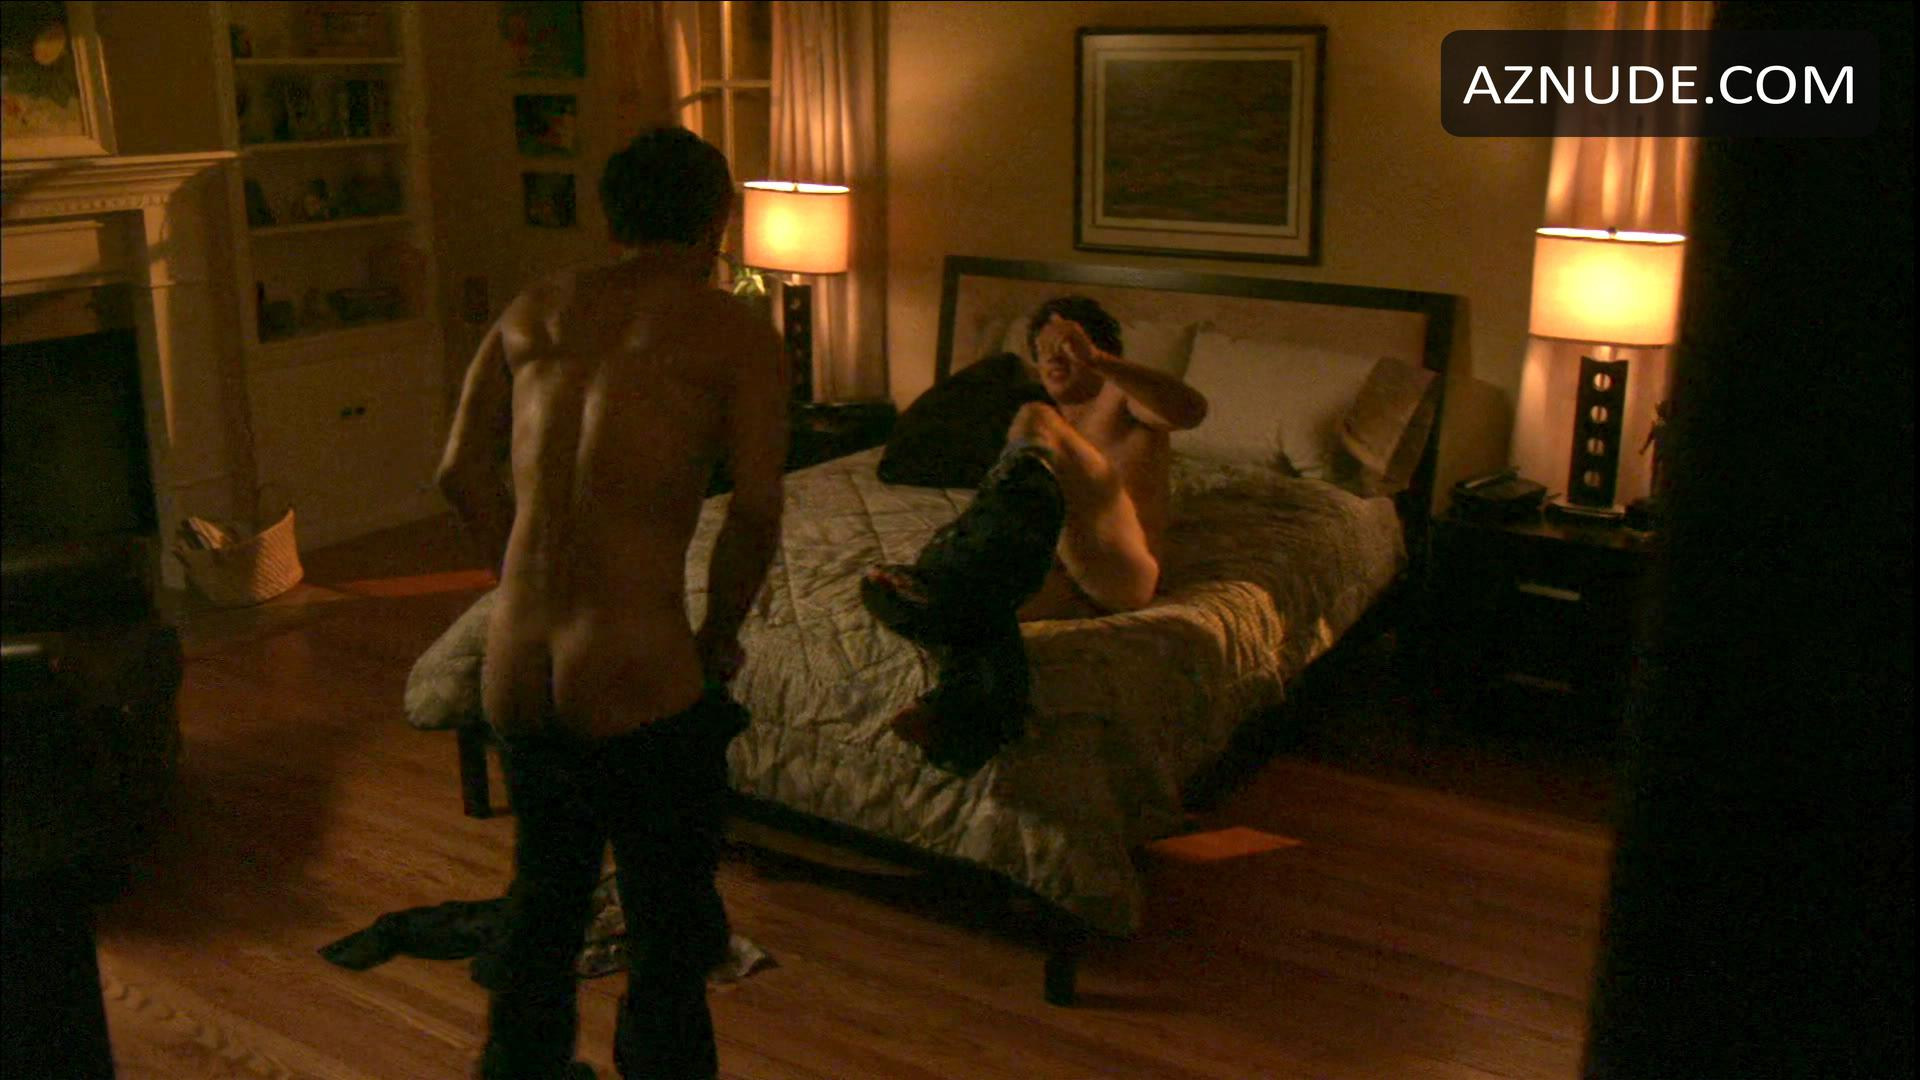 Naked laura ortiz in sleeper cell ancensored